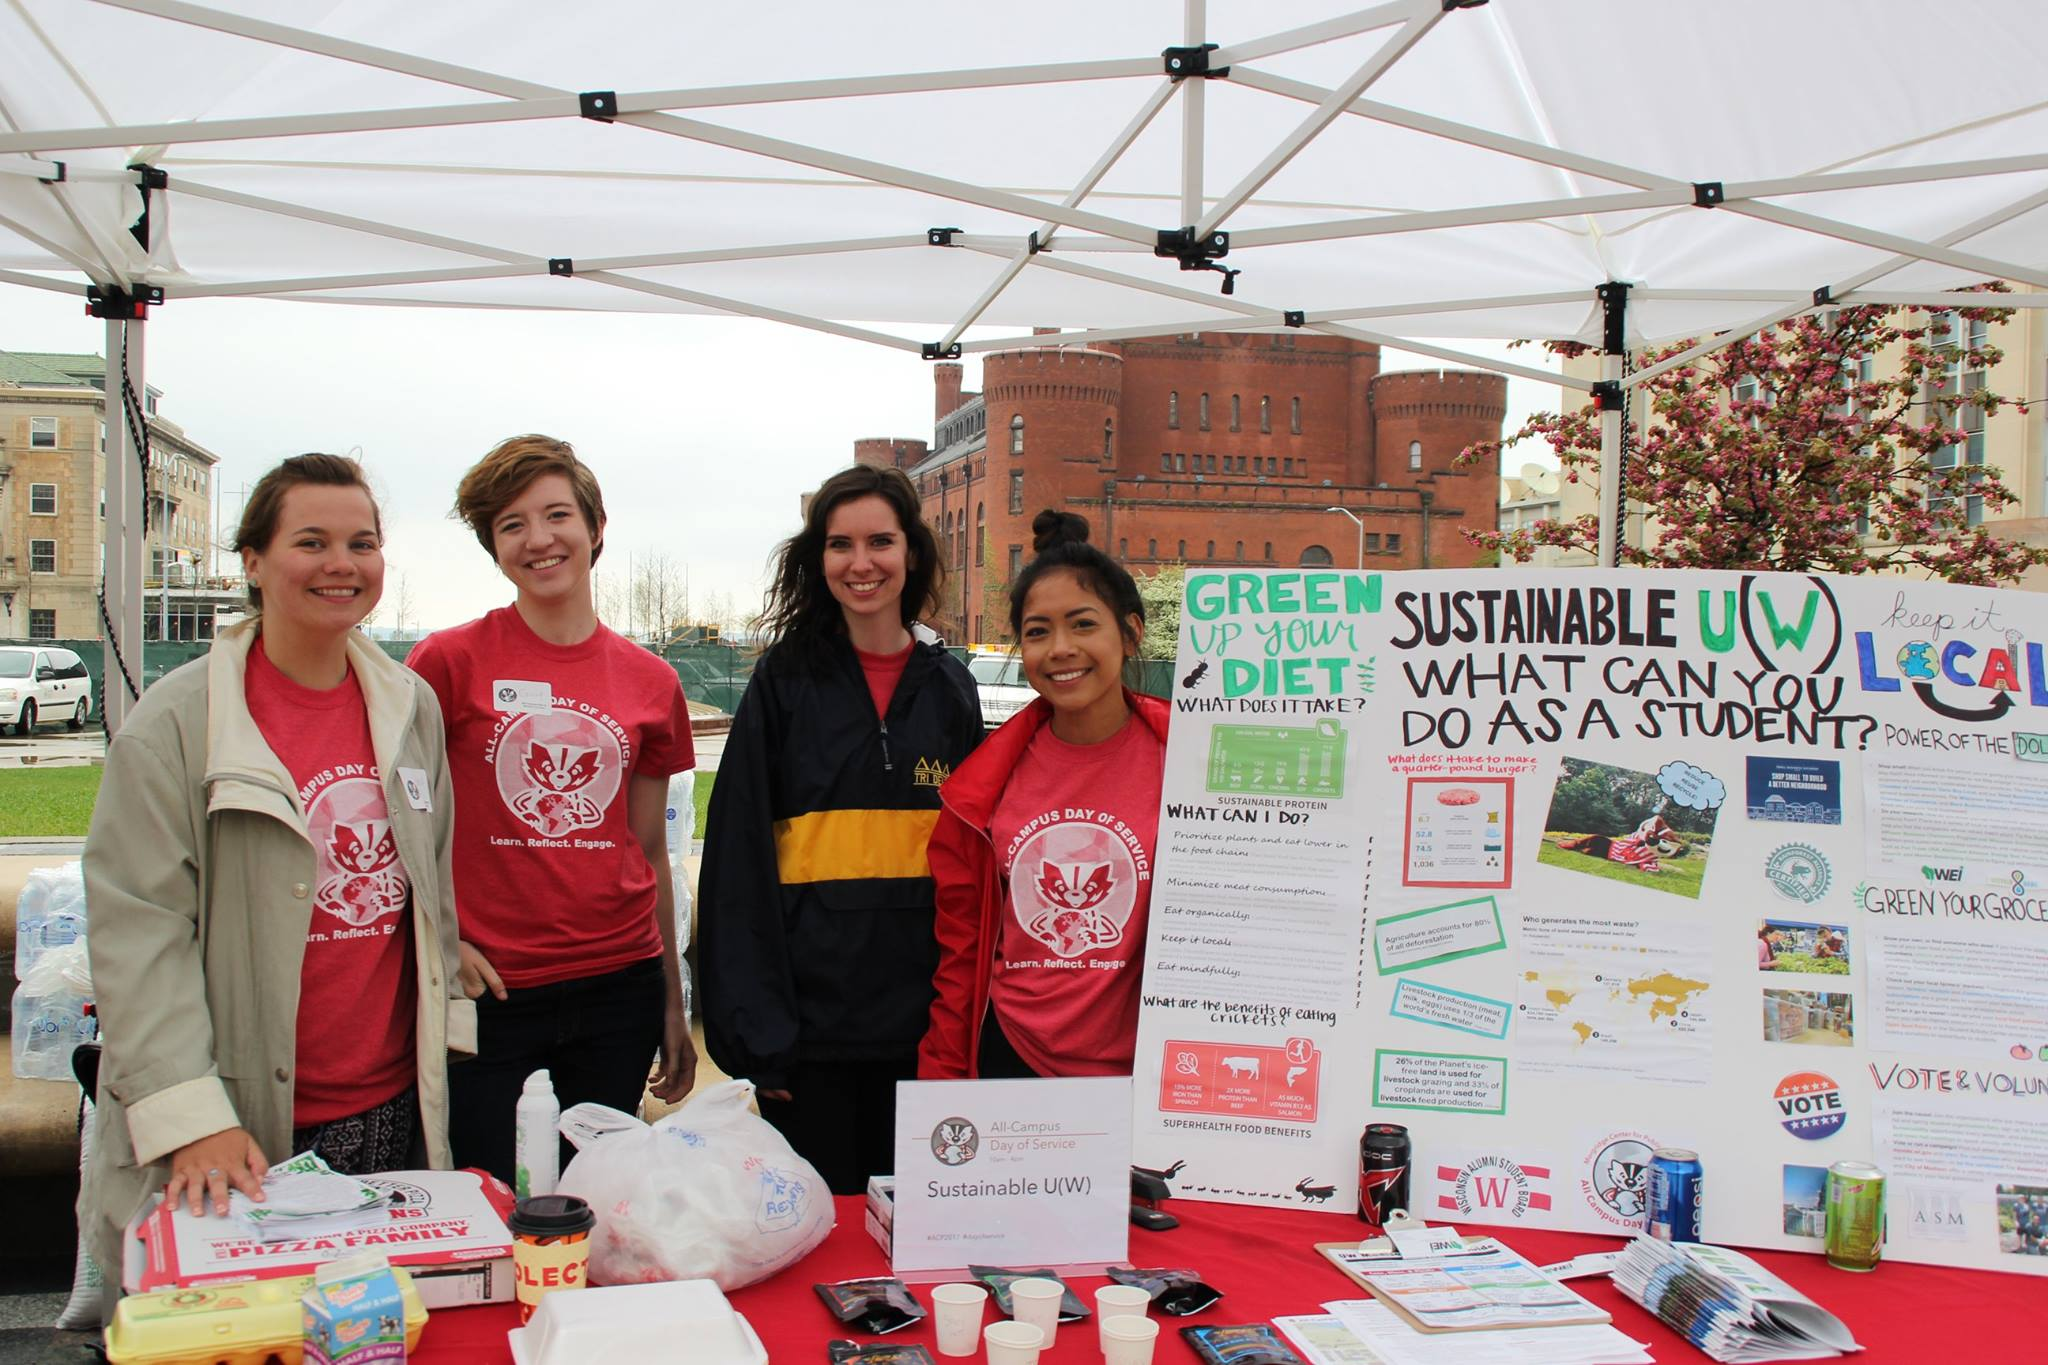 McBride at the 2017 All-Campus Day of Service, when she and fellow intern Junalee Ly (far right) organized a sustainability-themed booth.